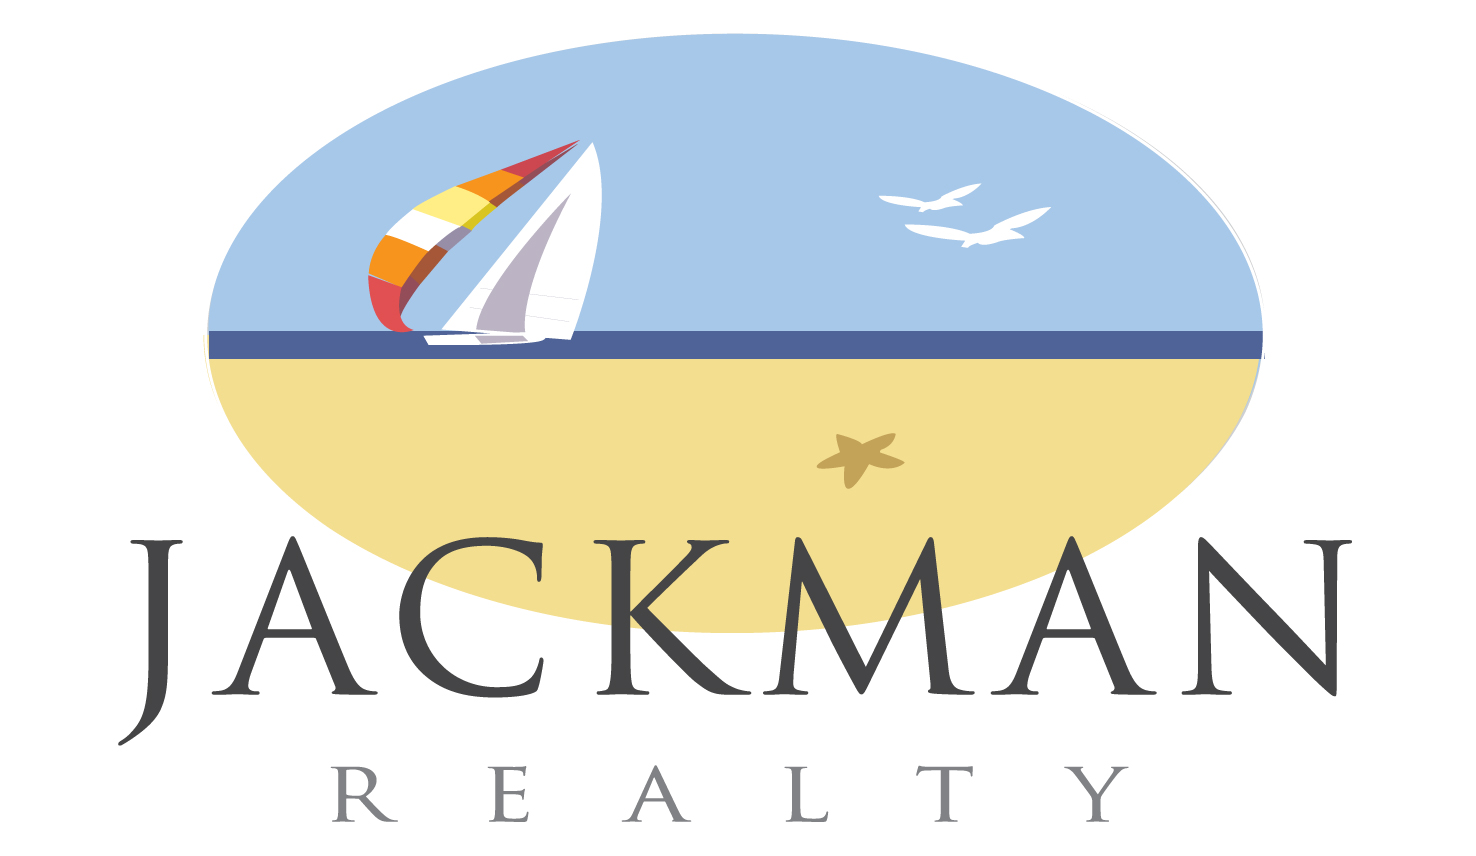 Jackman Realty